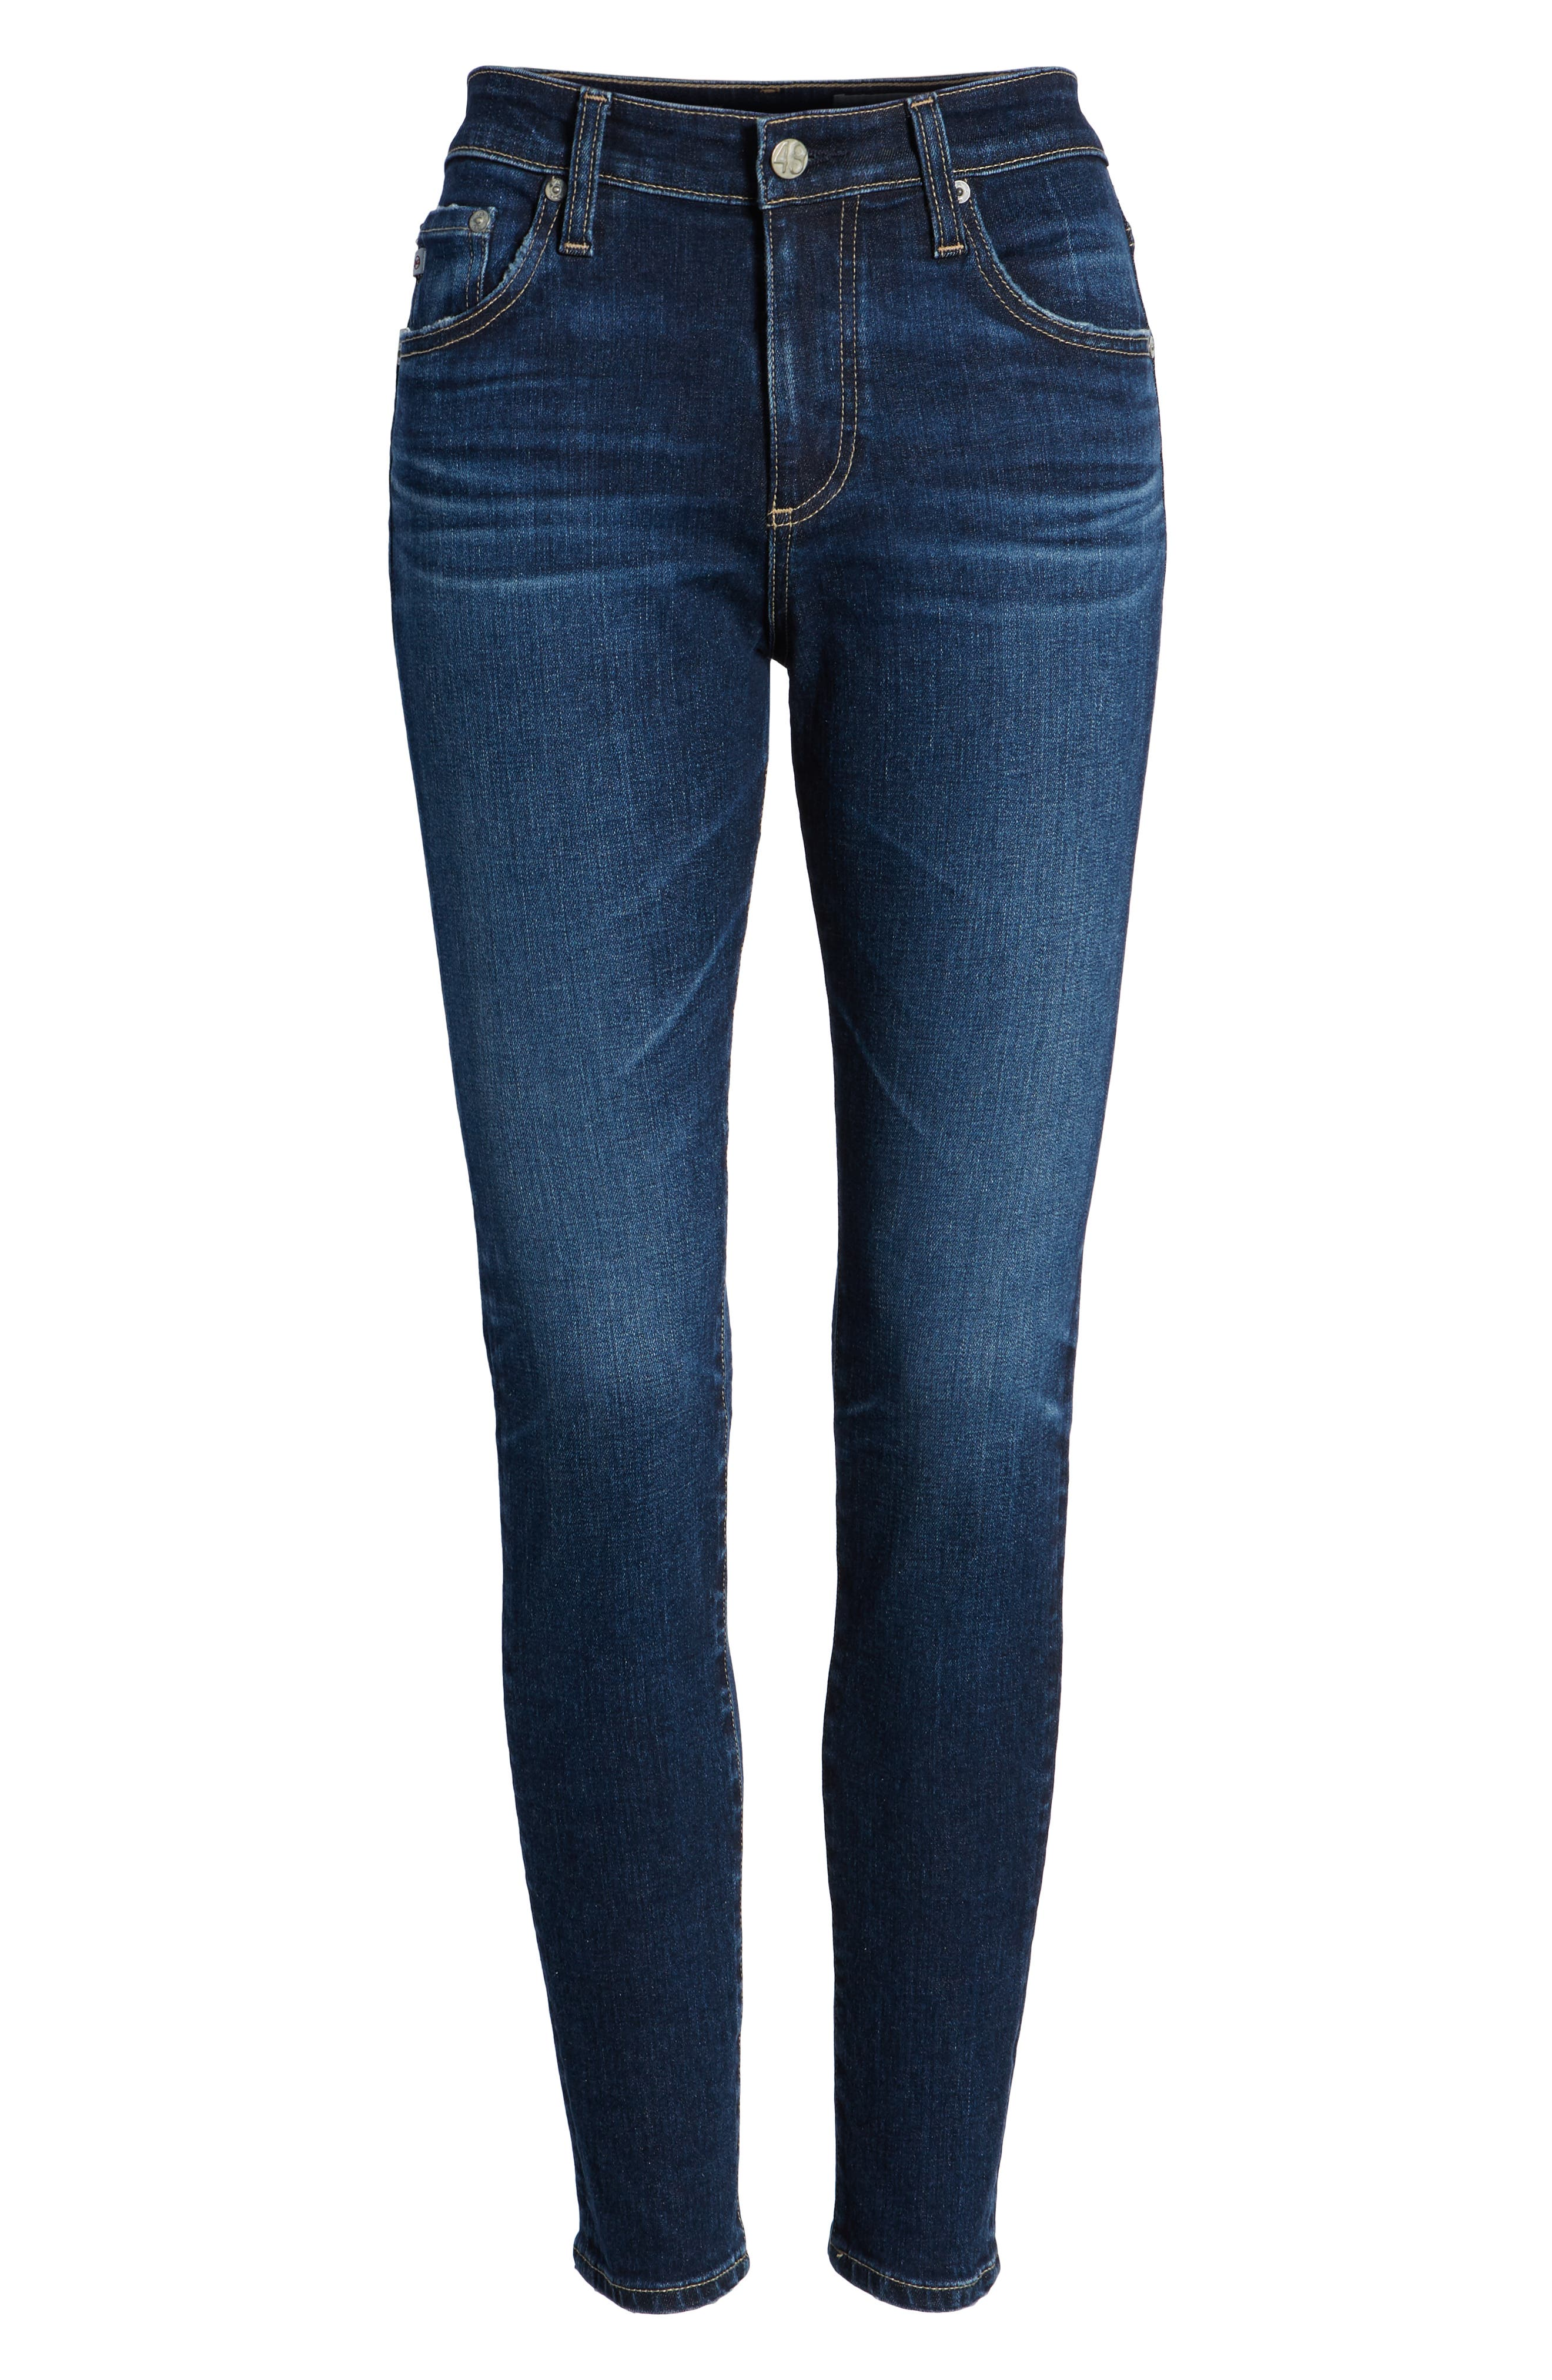 The Farrah Ankle Skinny Jeans,                             Alternate thumbnail 7, color,                             07 YEARS ASTRO AZURE